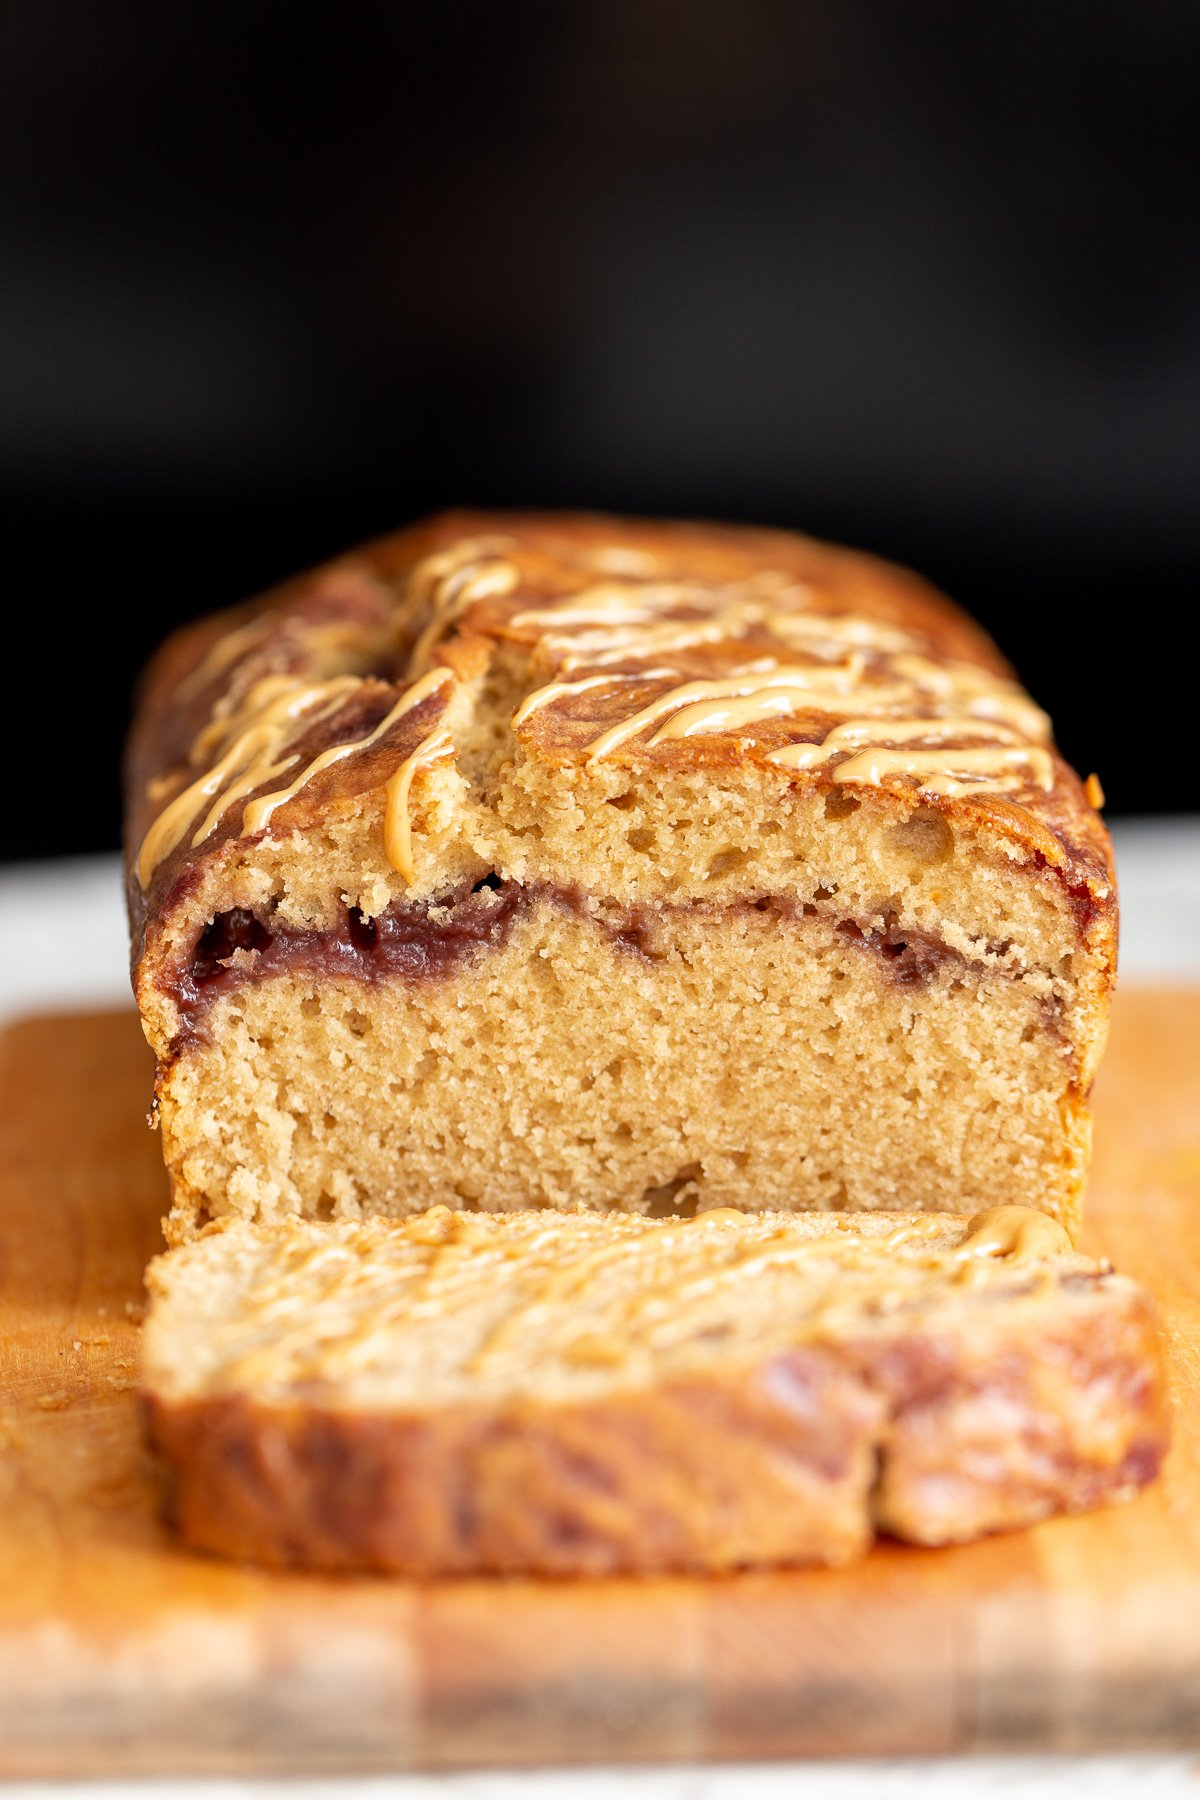 a sliced vegan peanut butter and jelly cake baked in a loaf pan